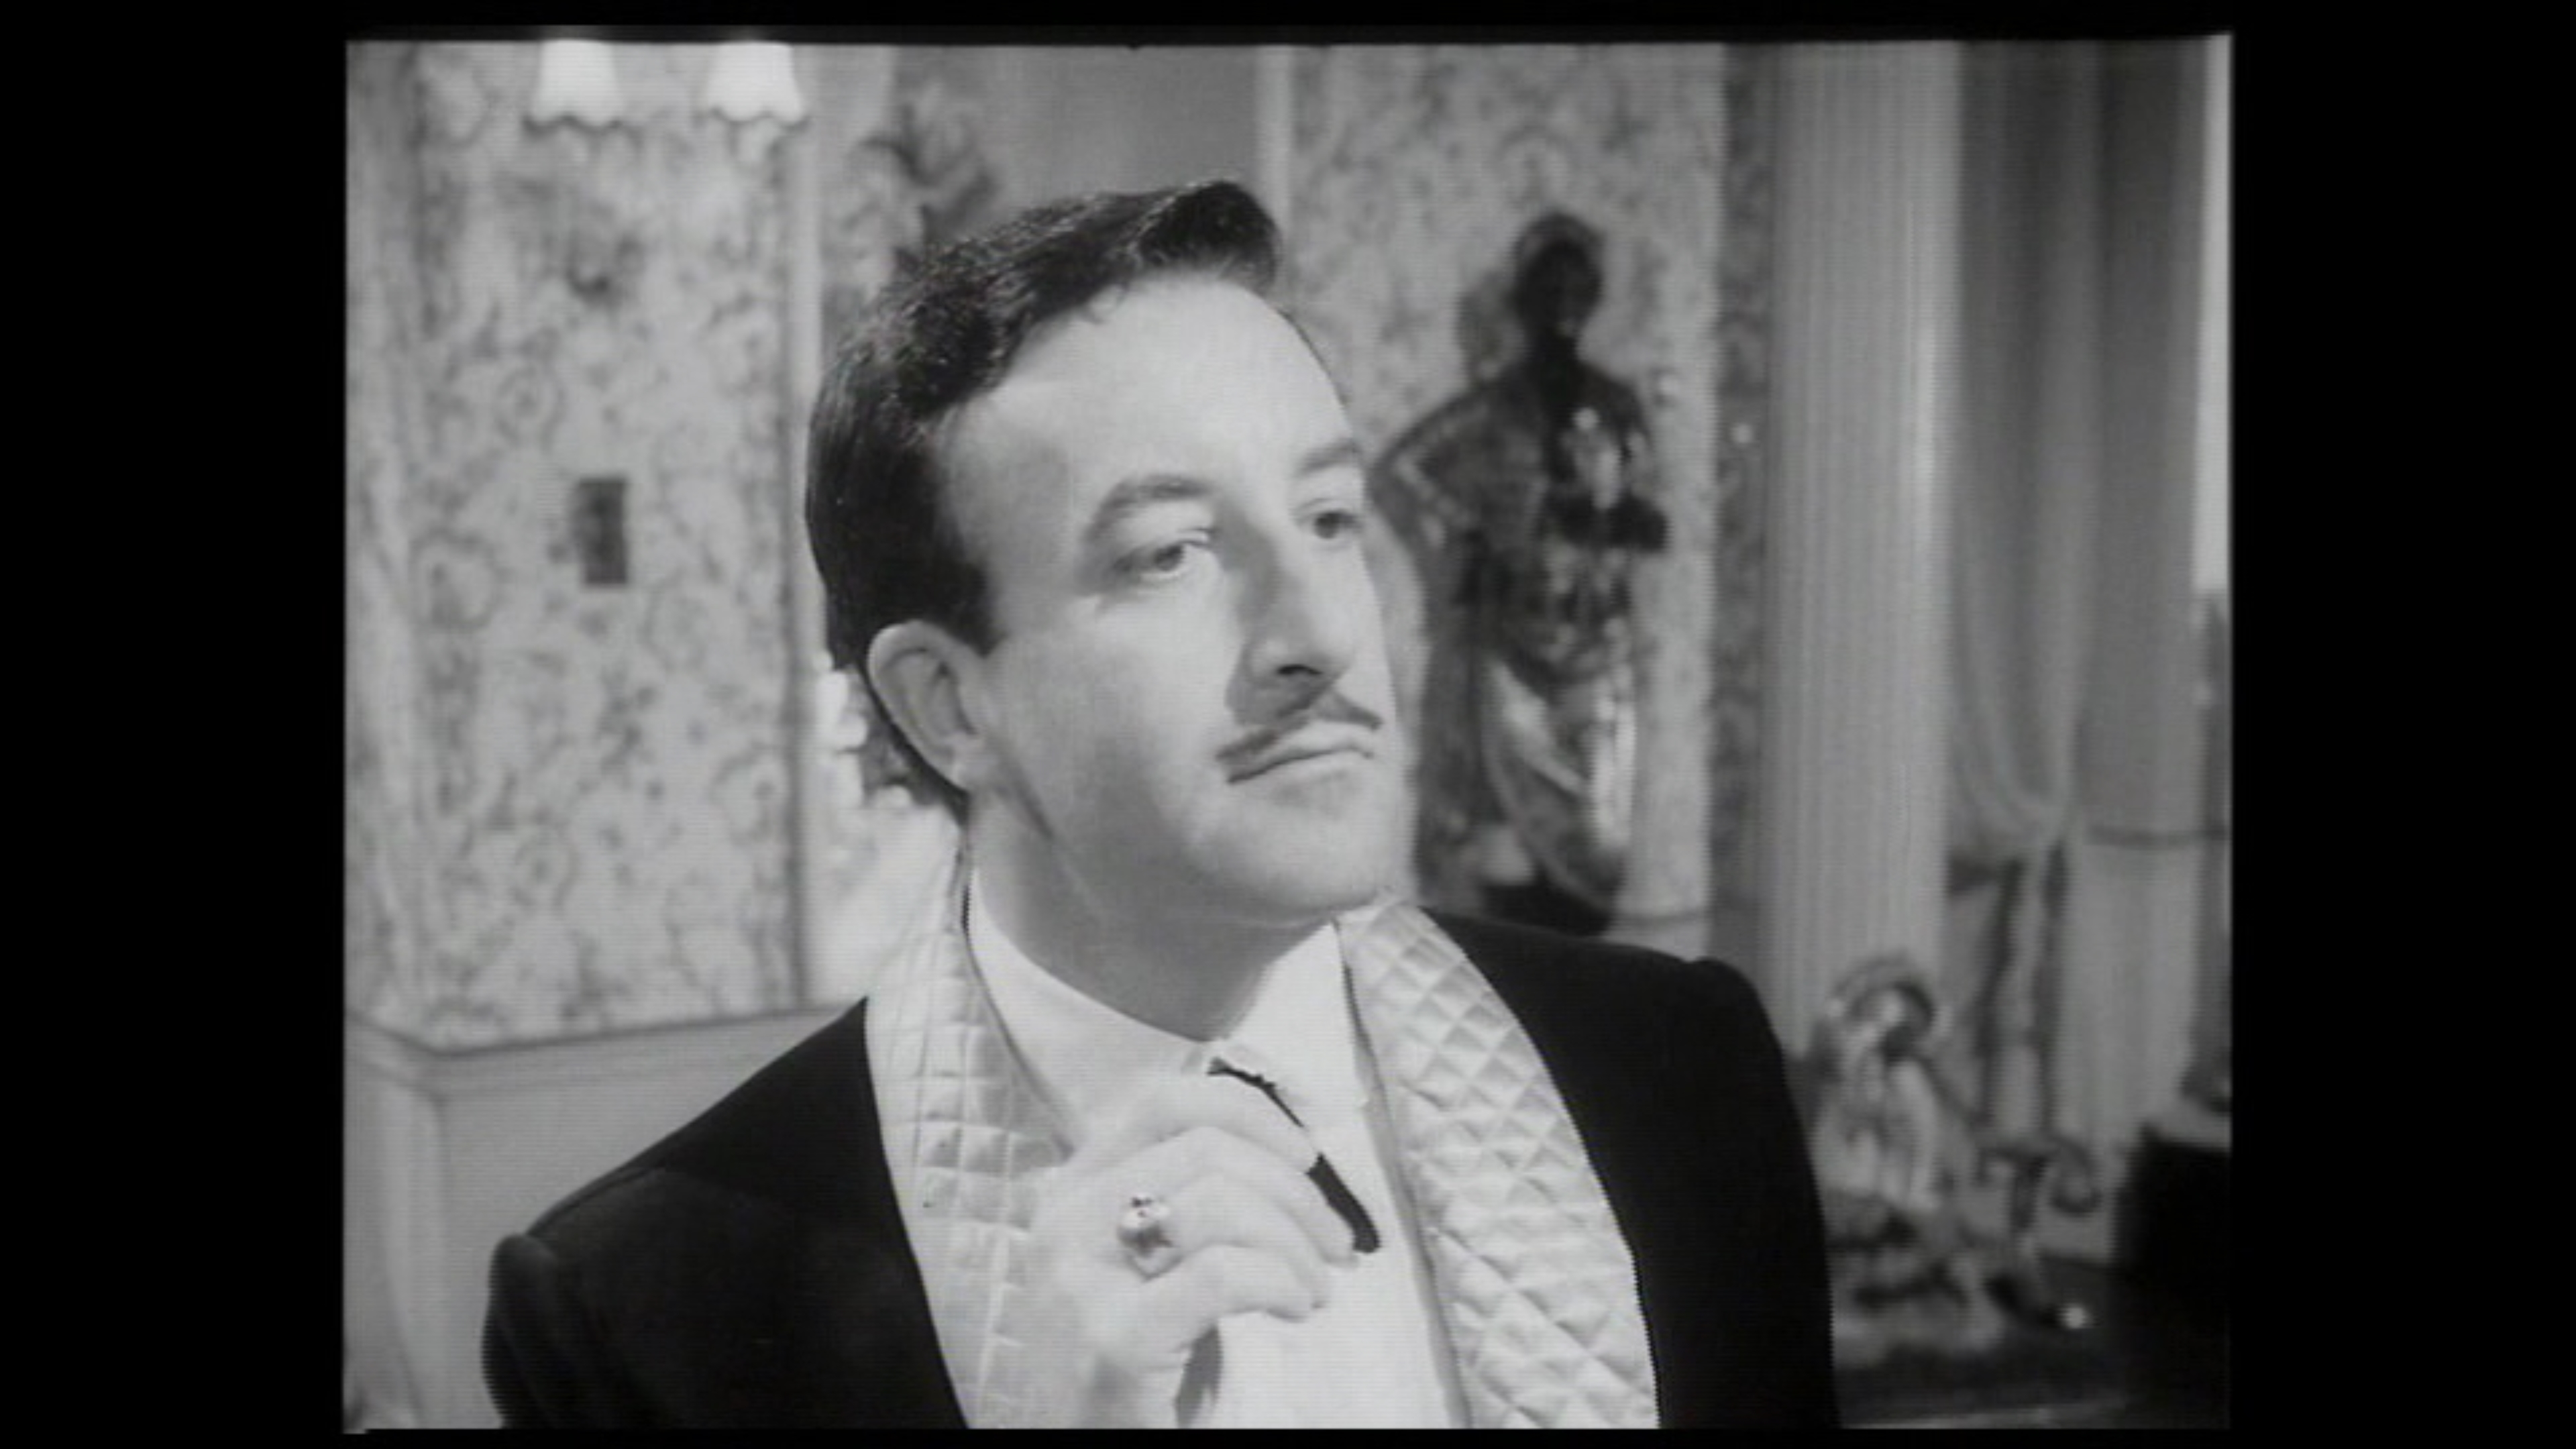 Peter Sellers in The Wrong Arm of the Law (1963)